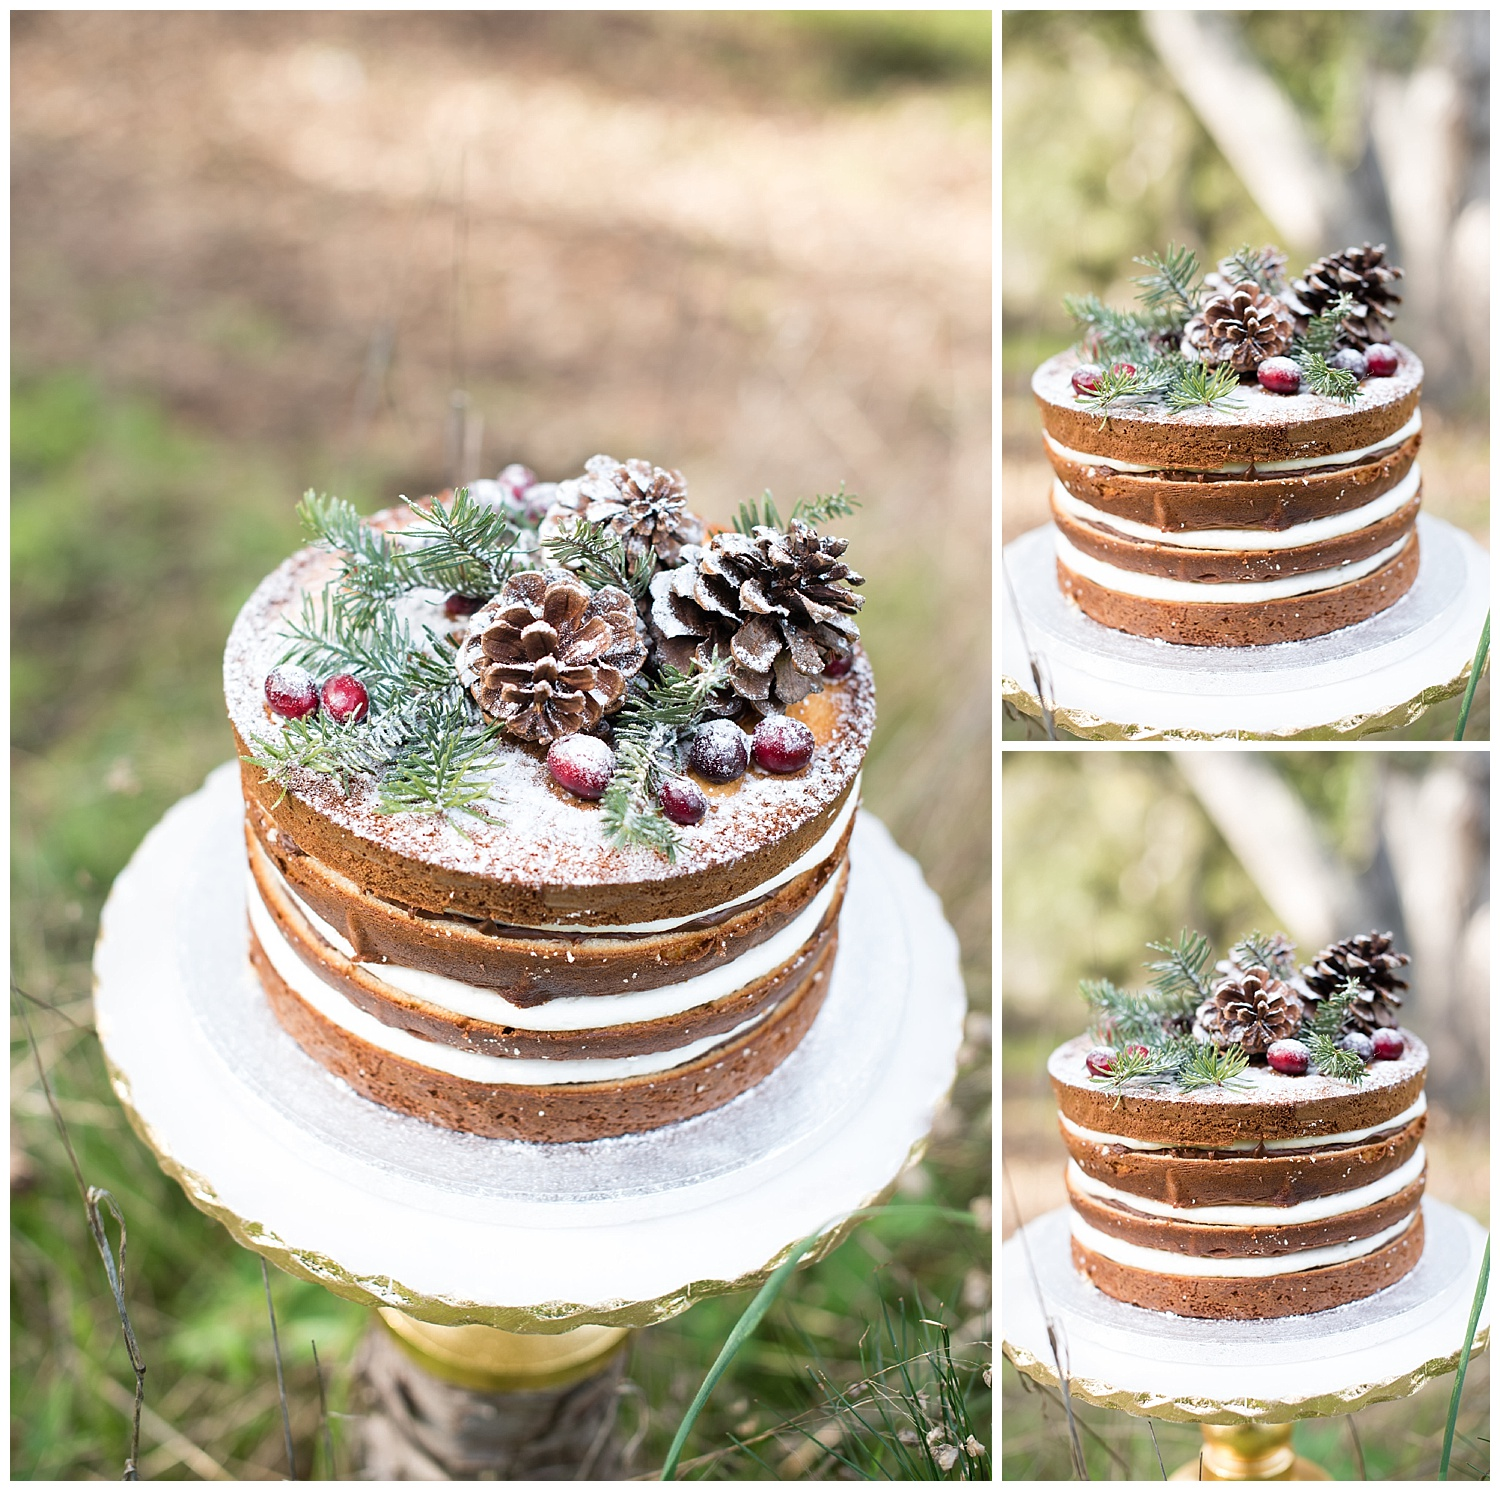 winter-wedding-cake-forest-decorations.jpg